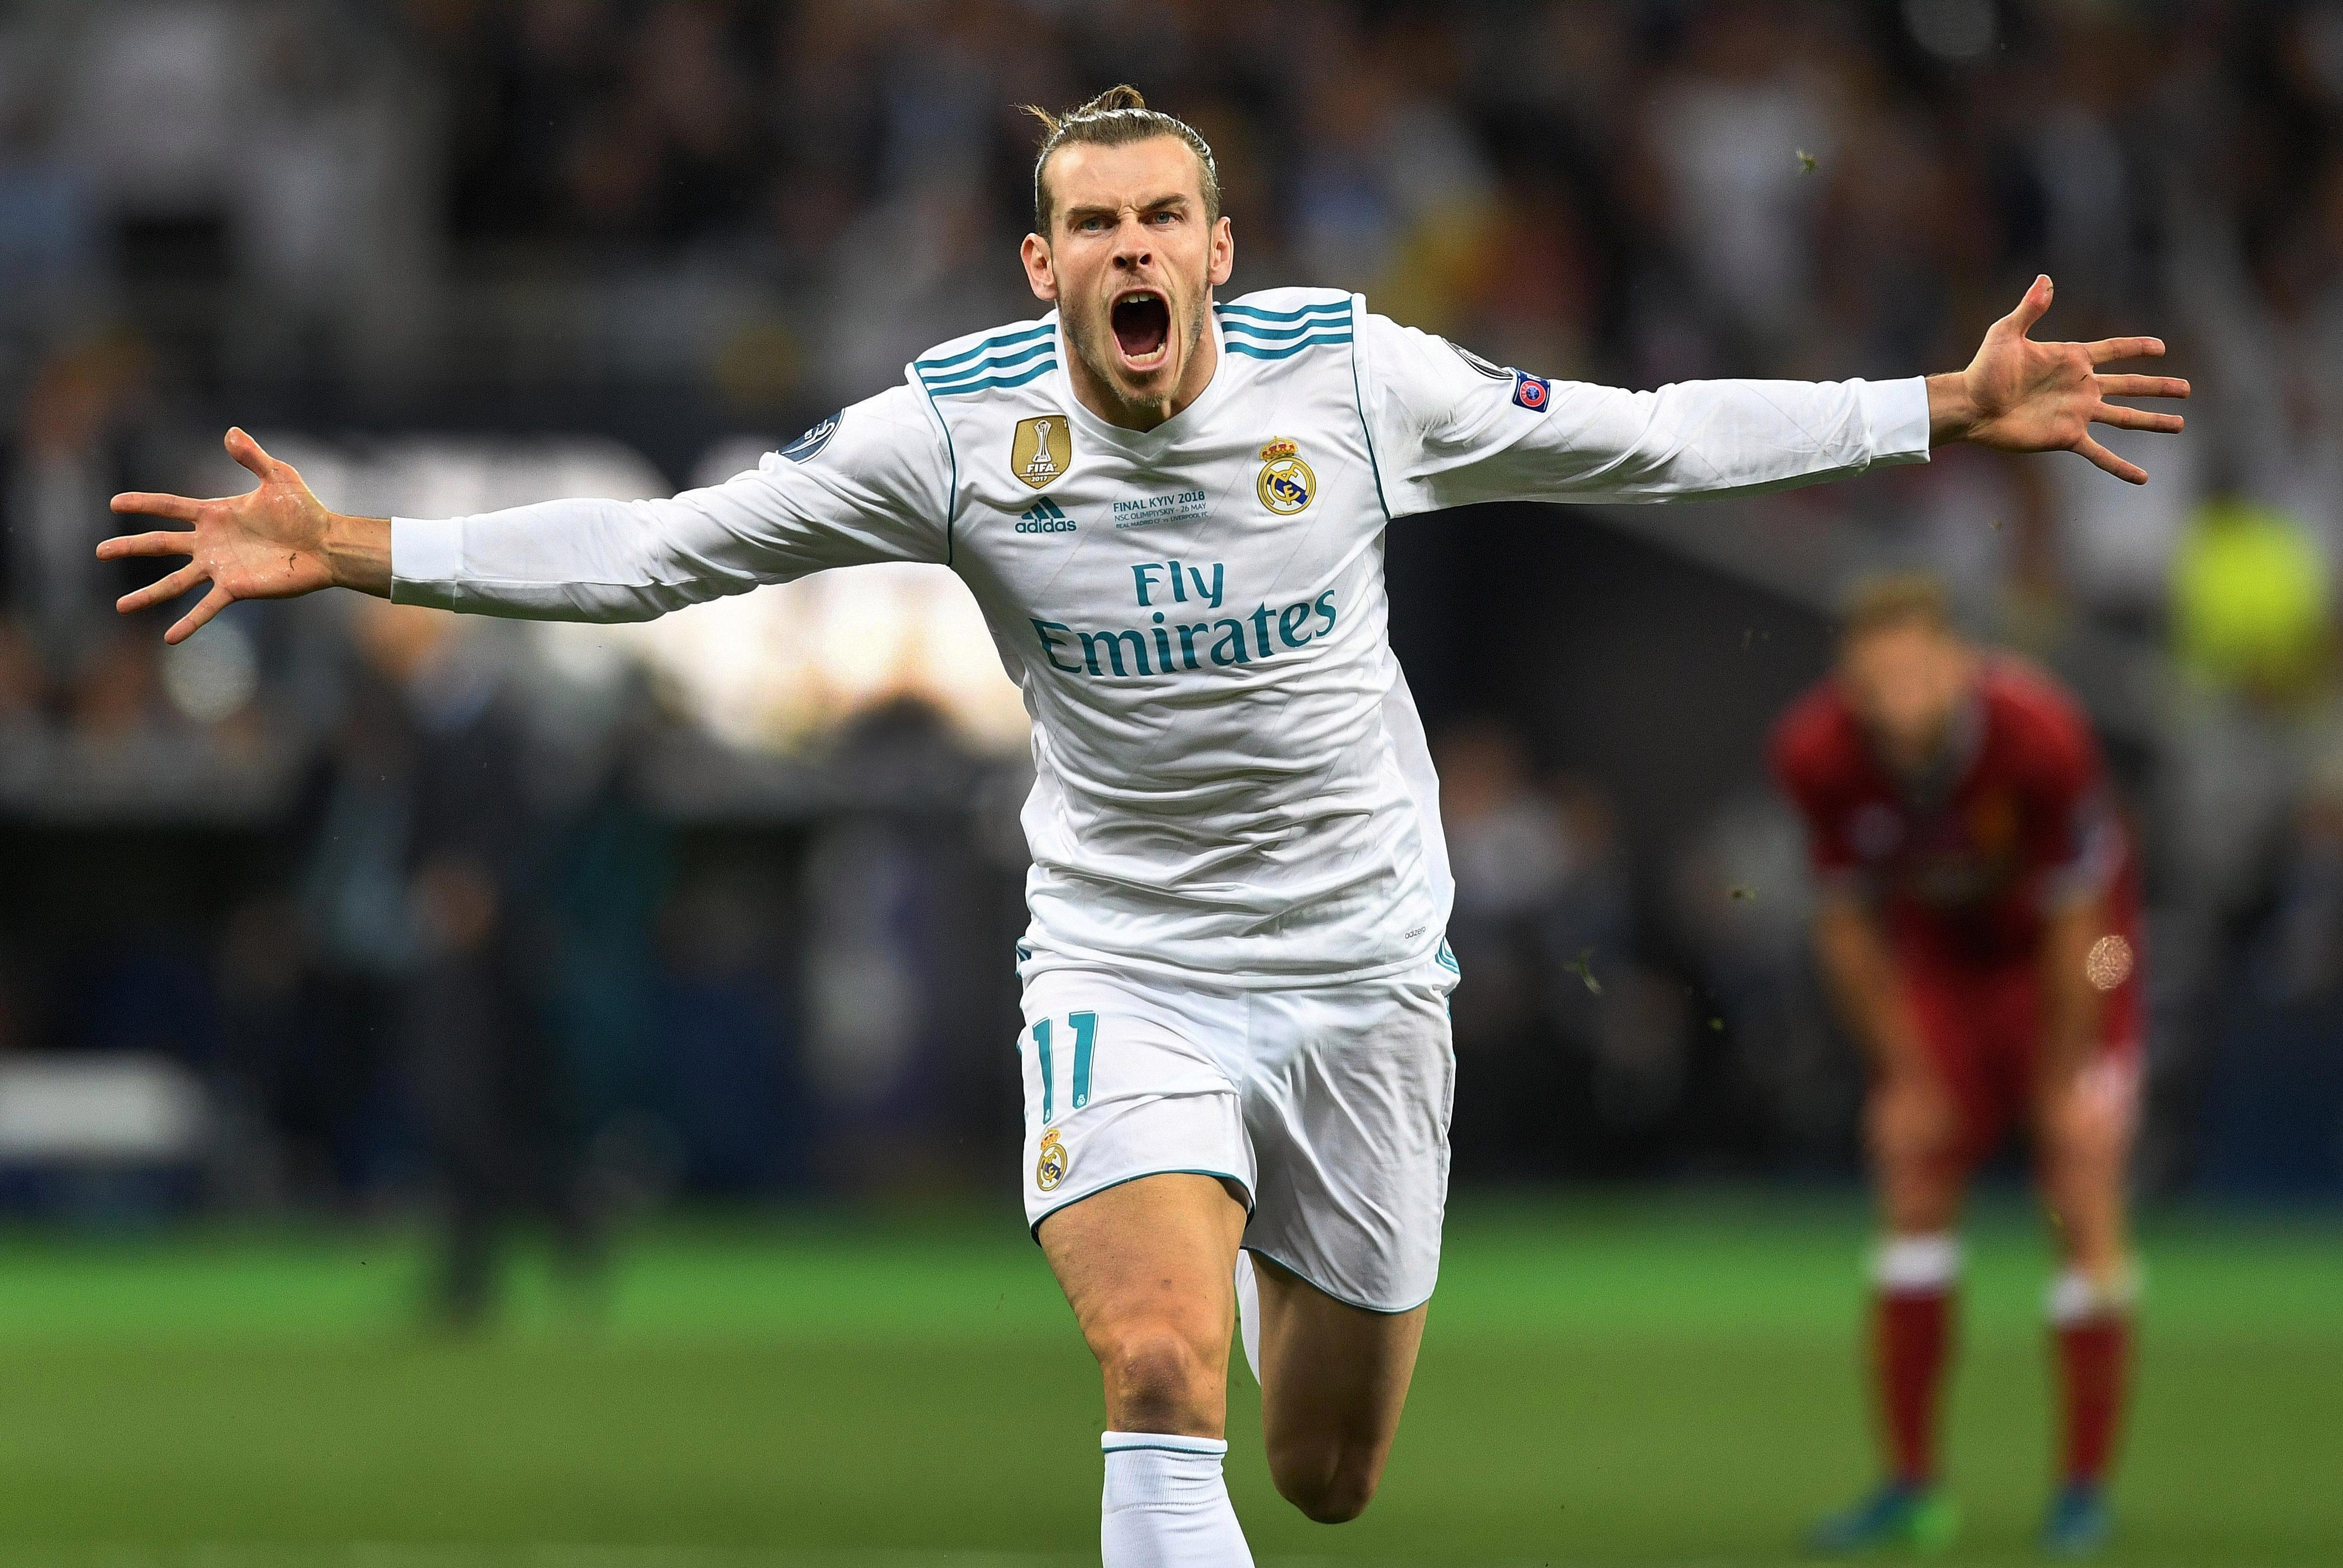 Gareth Bale is a target for Manchester United but will wait to decide future